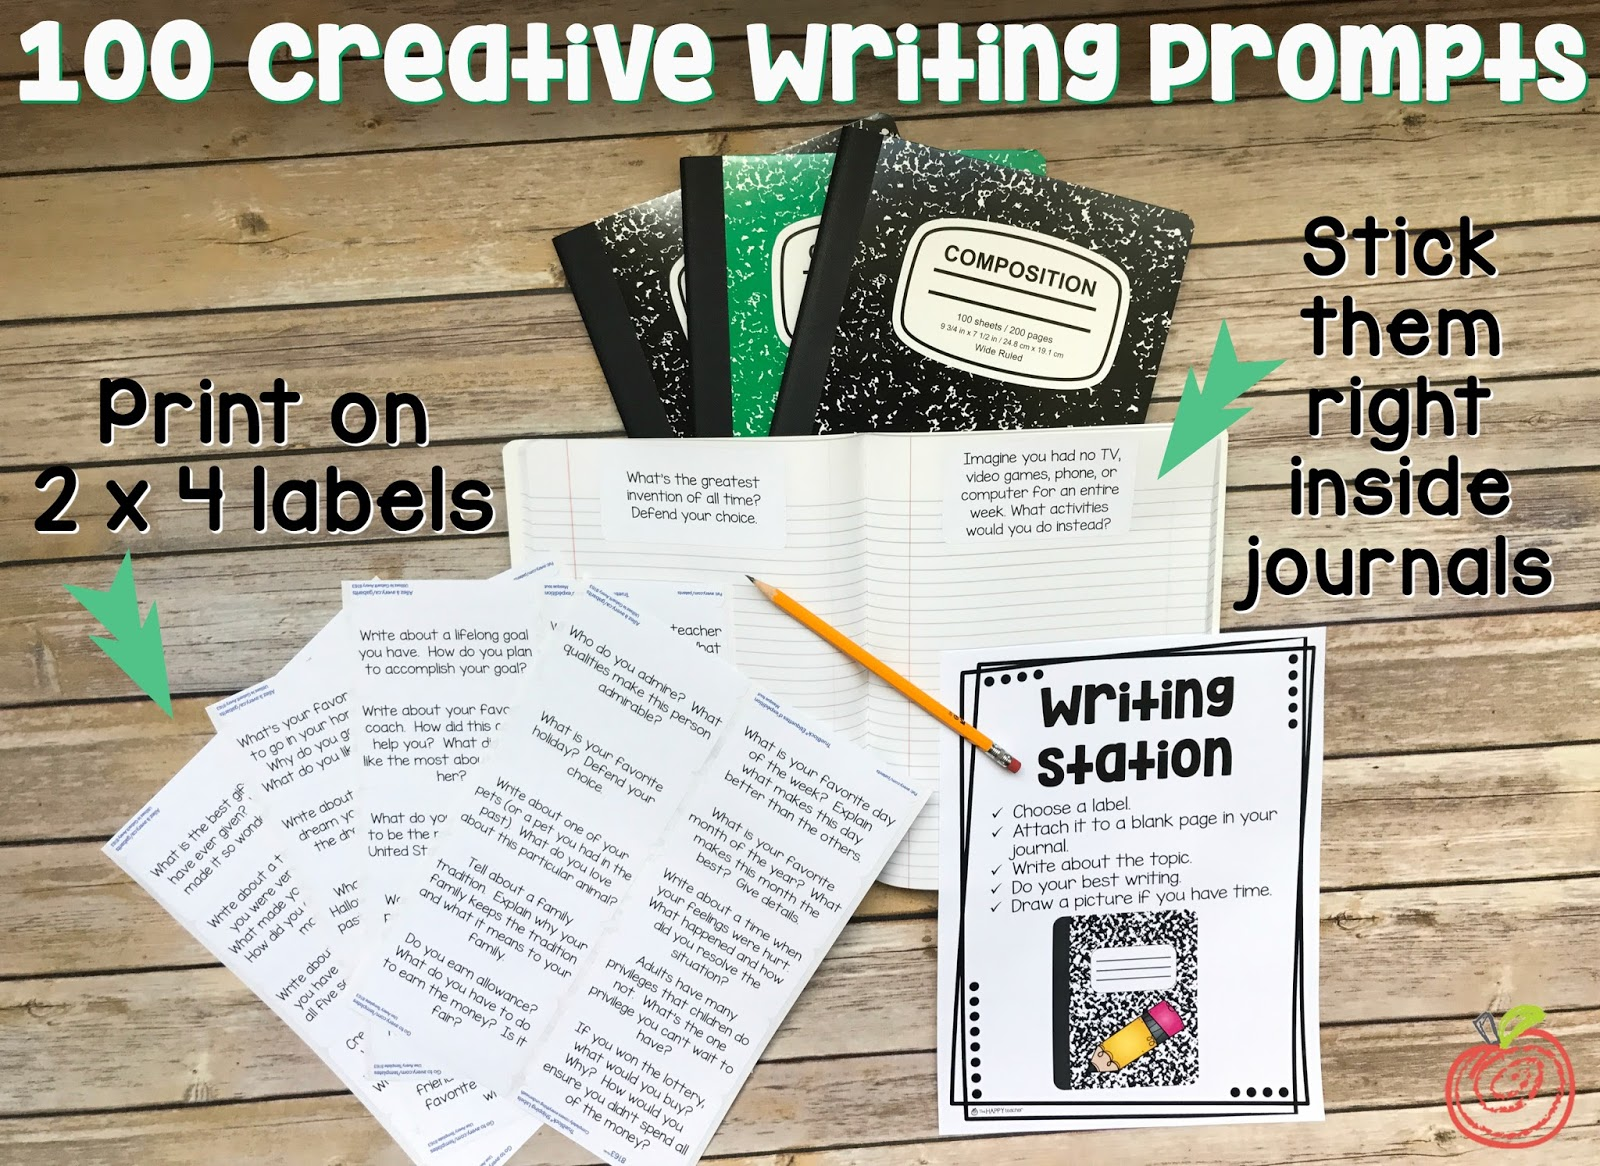 journal writing prompts Daily writing prompts - july july writing prompts below are daily writing prompts for the month of july the majority of the prompts are related to the various events on our july events calendarthese events include birthdays, holidays, monthly celebrations, and important dates in history.